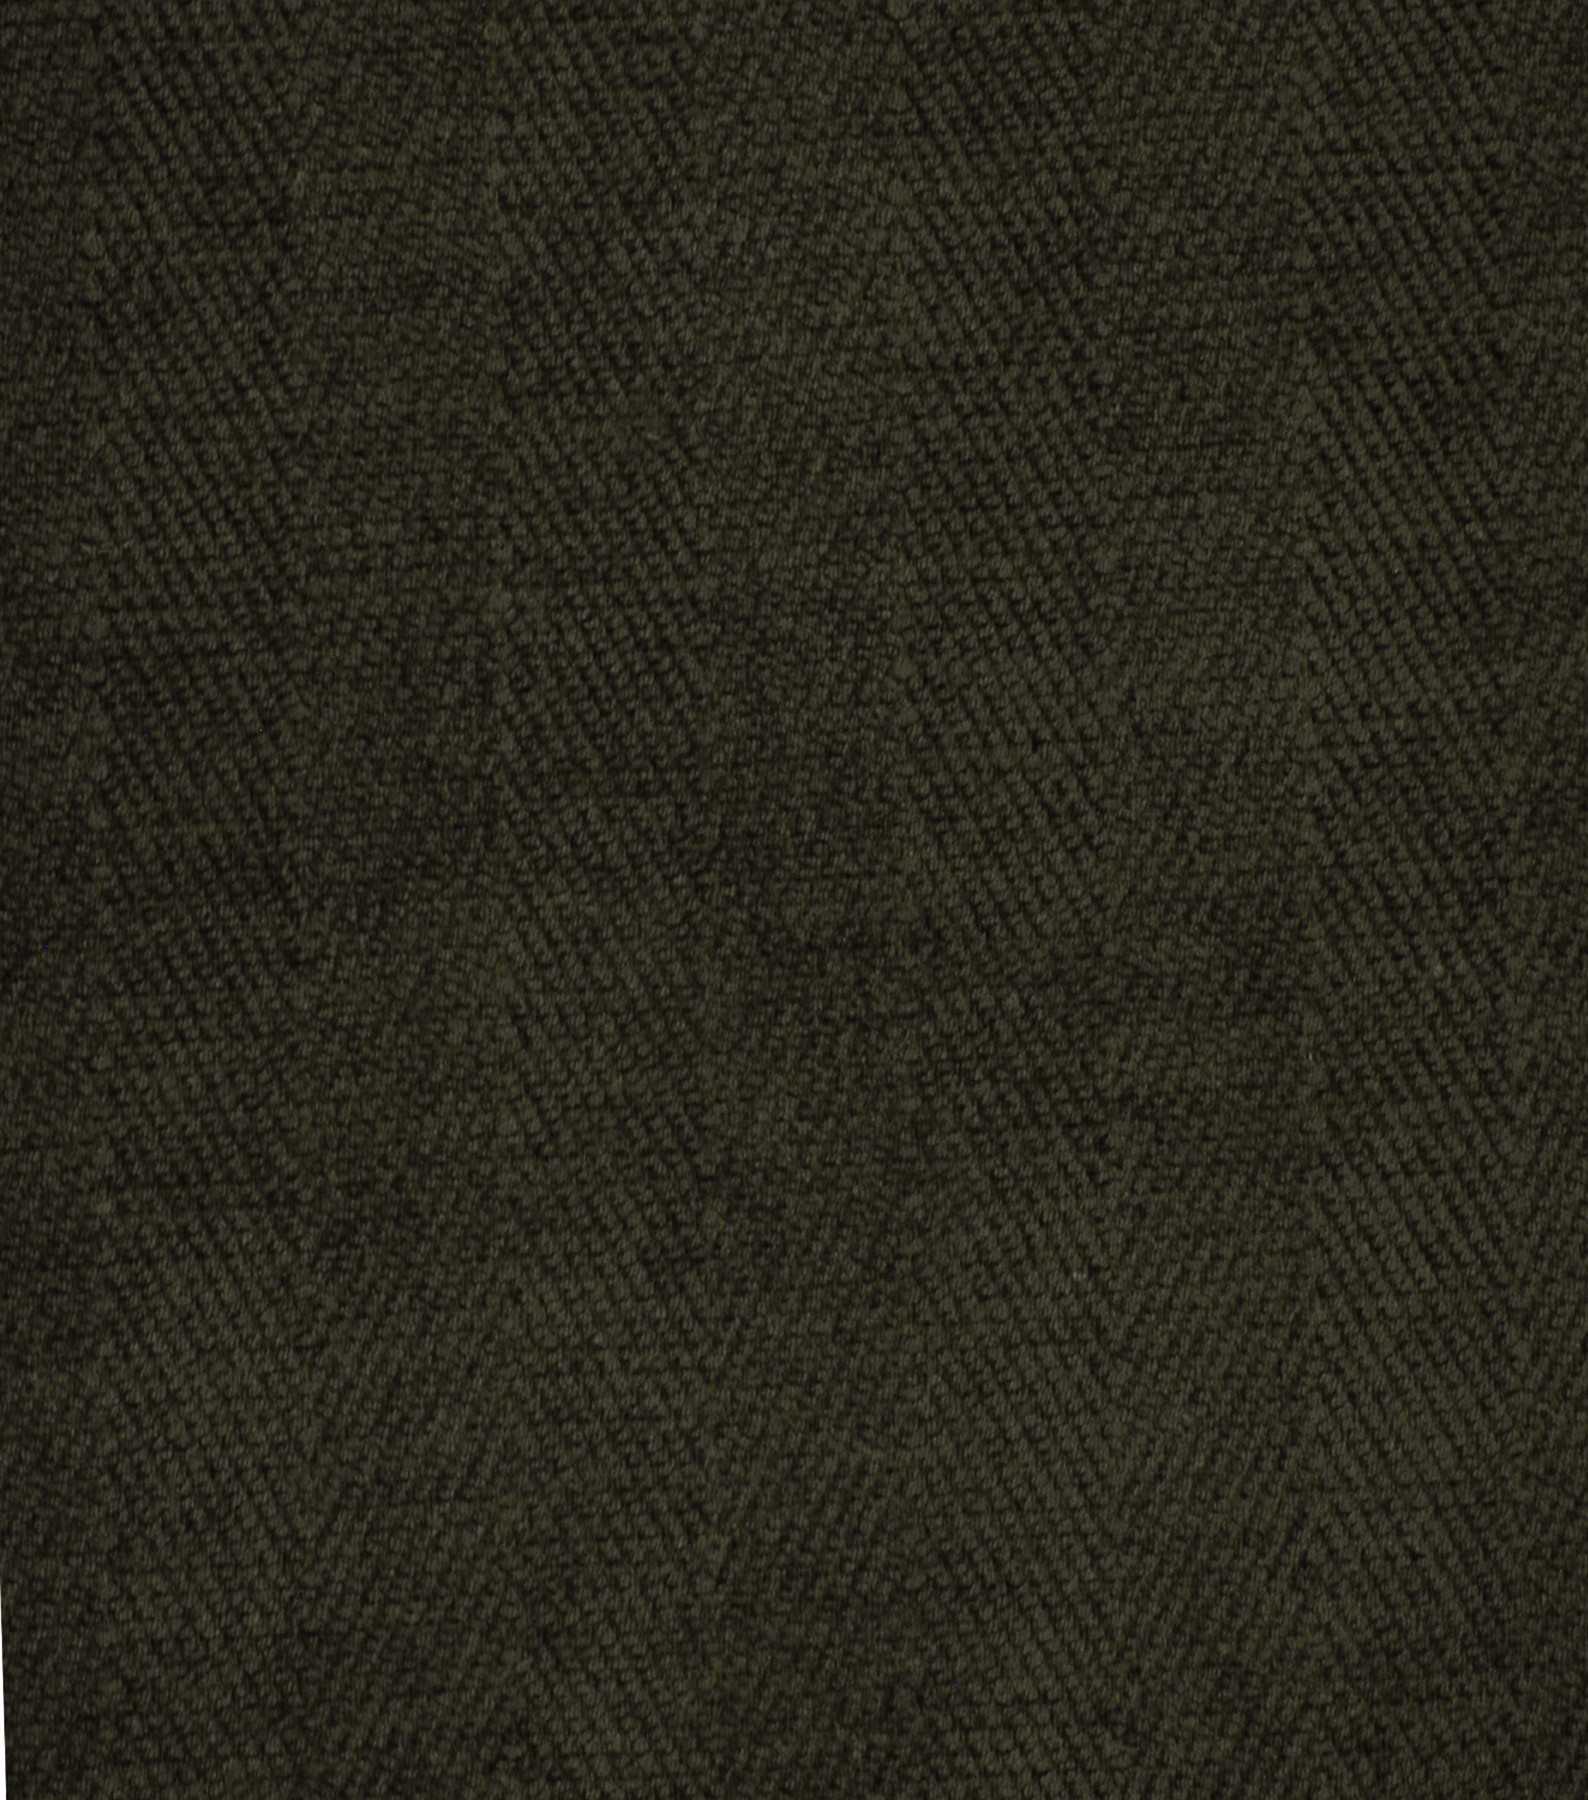 Home Decor 8\u0022x8\u0022 Fabric Swatch-Signature Series Sweater Charcoal